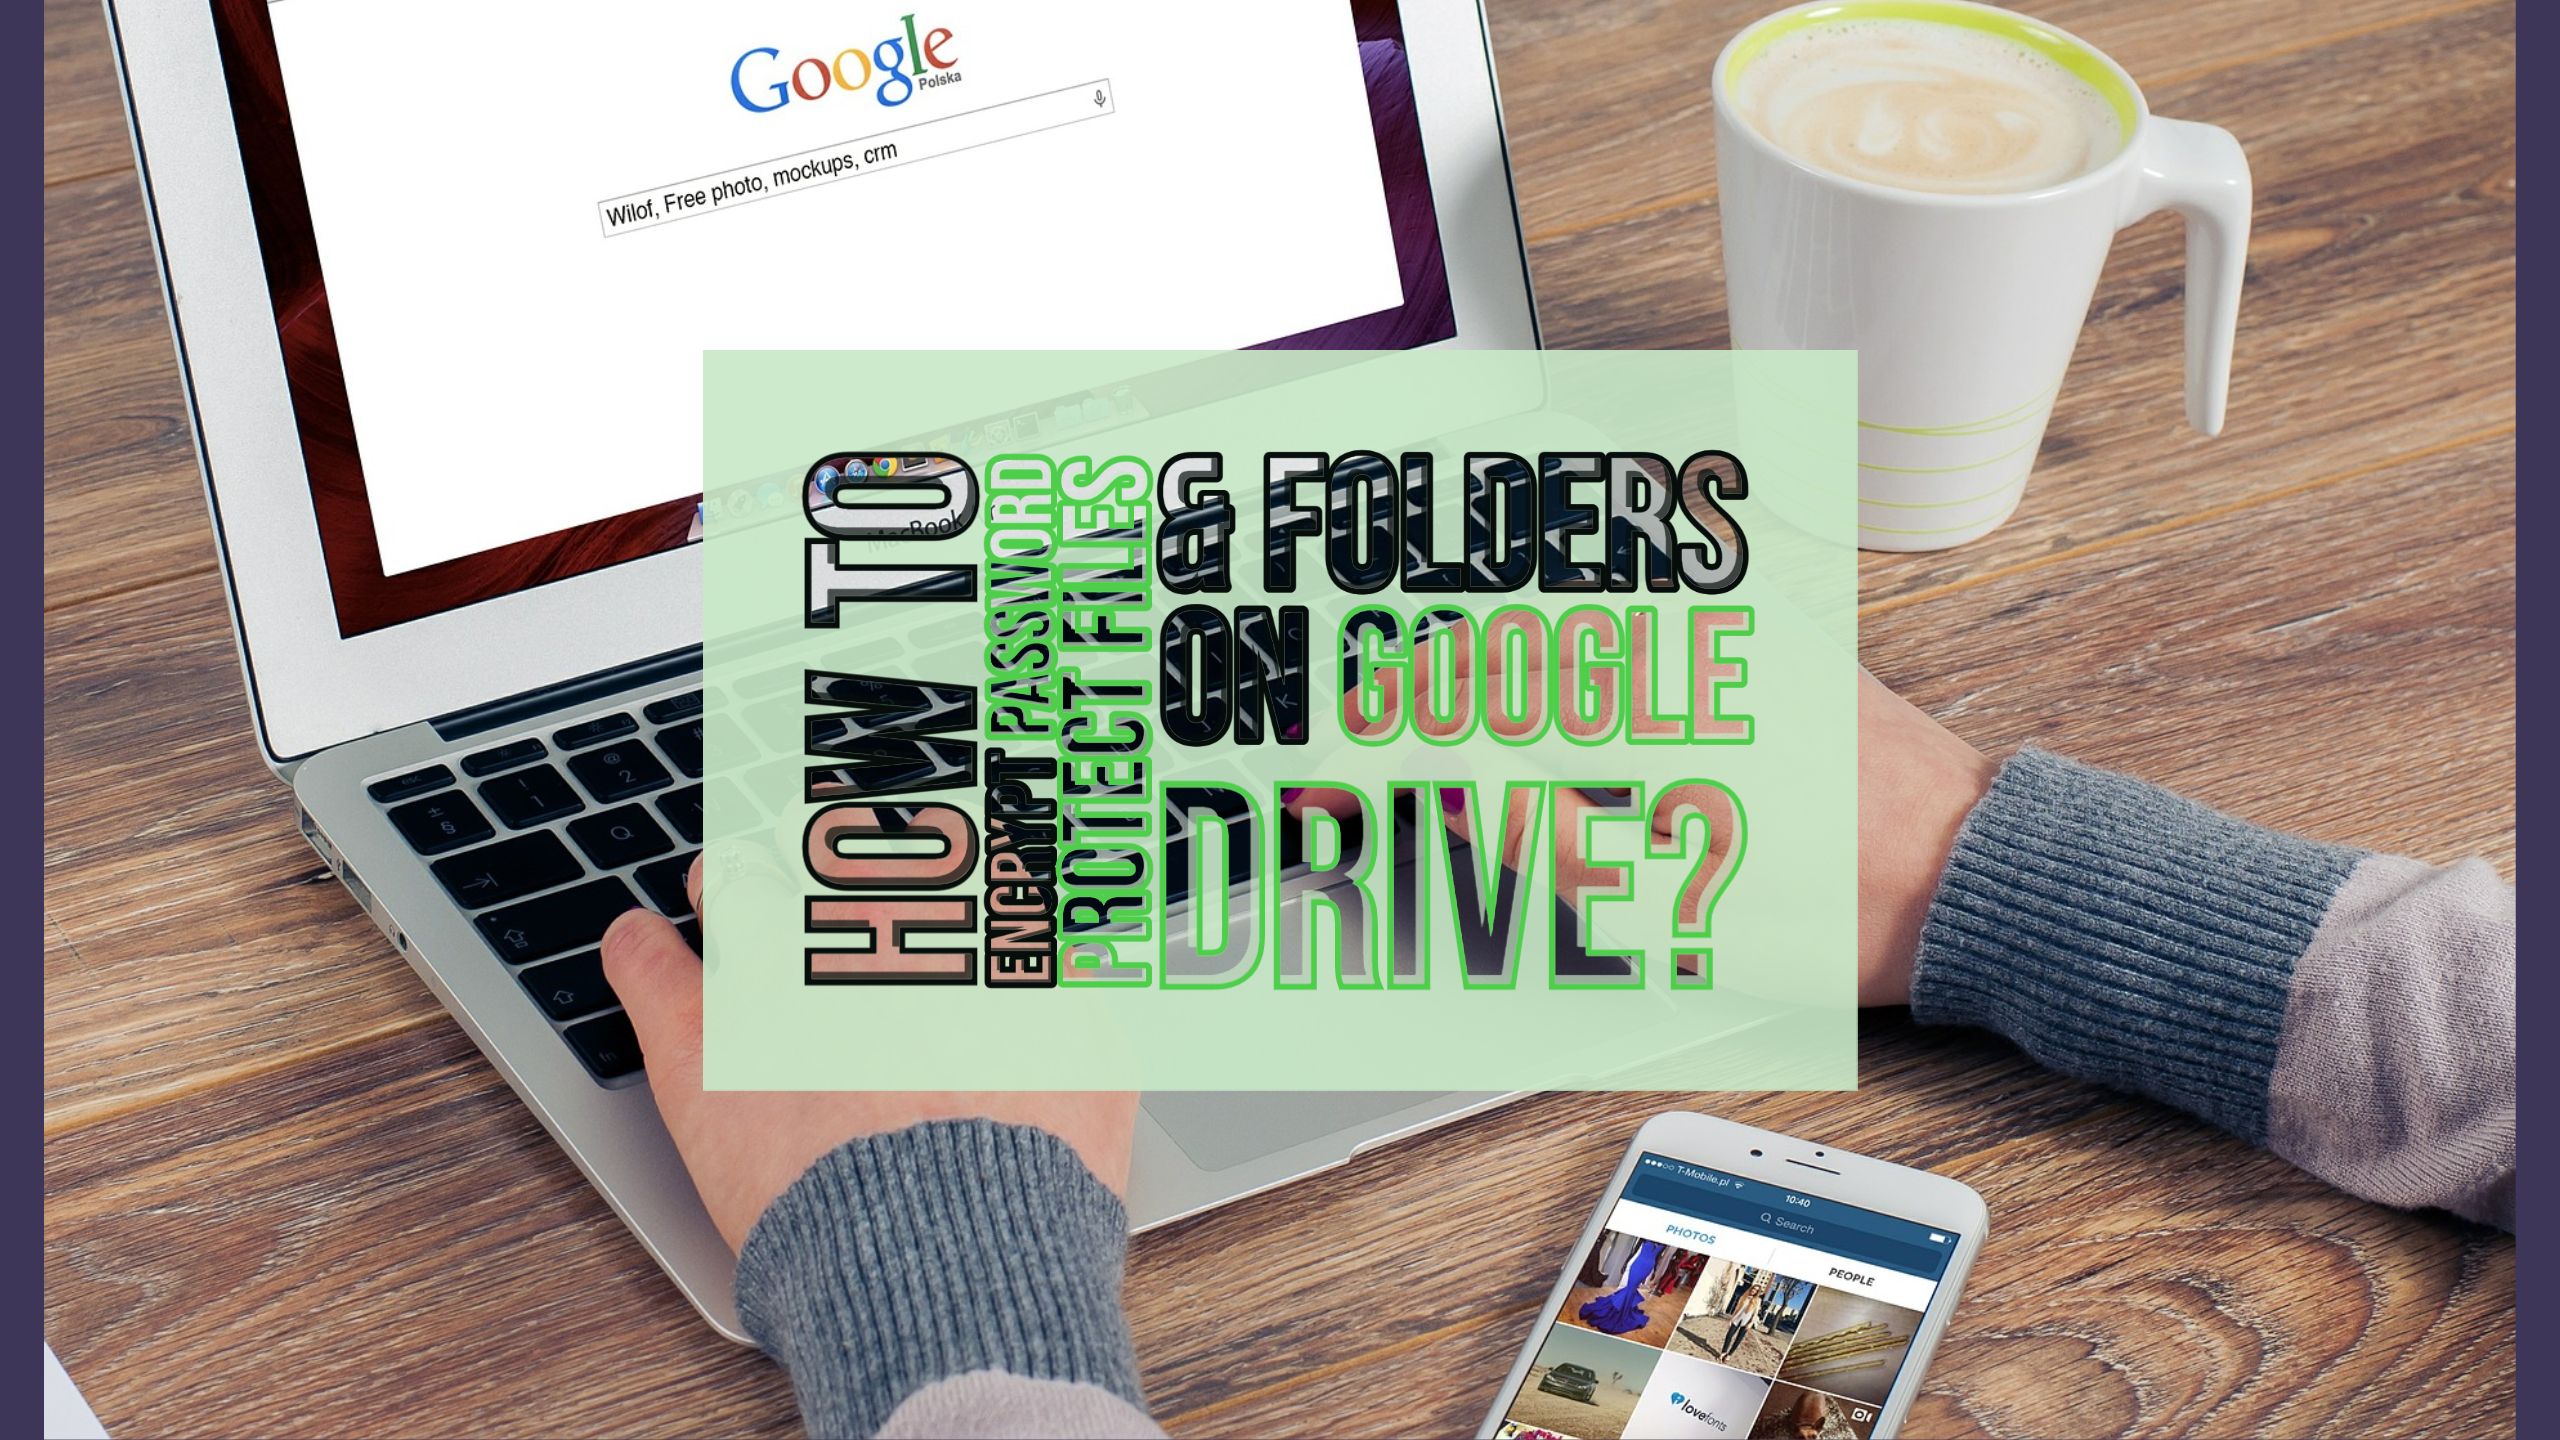 How to Encrypt Password Protect Files & Folders on Google Drive?